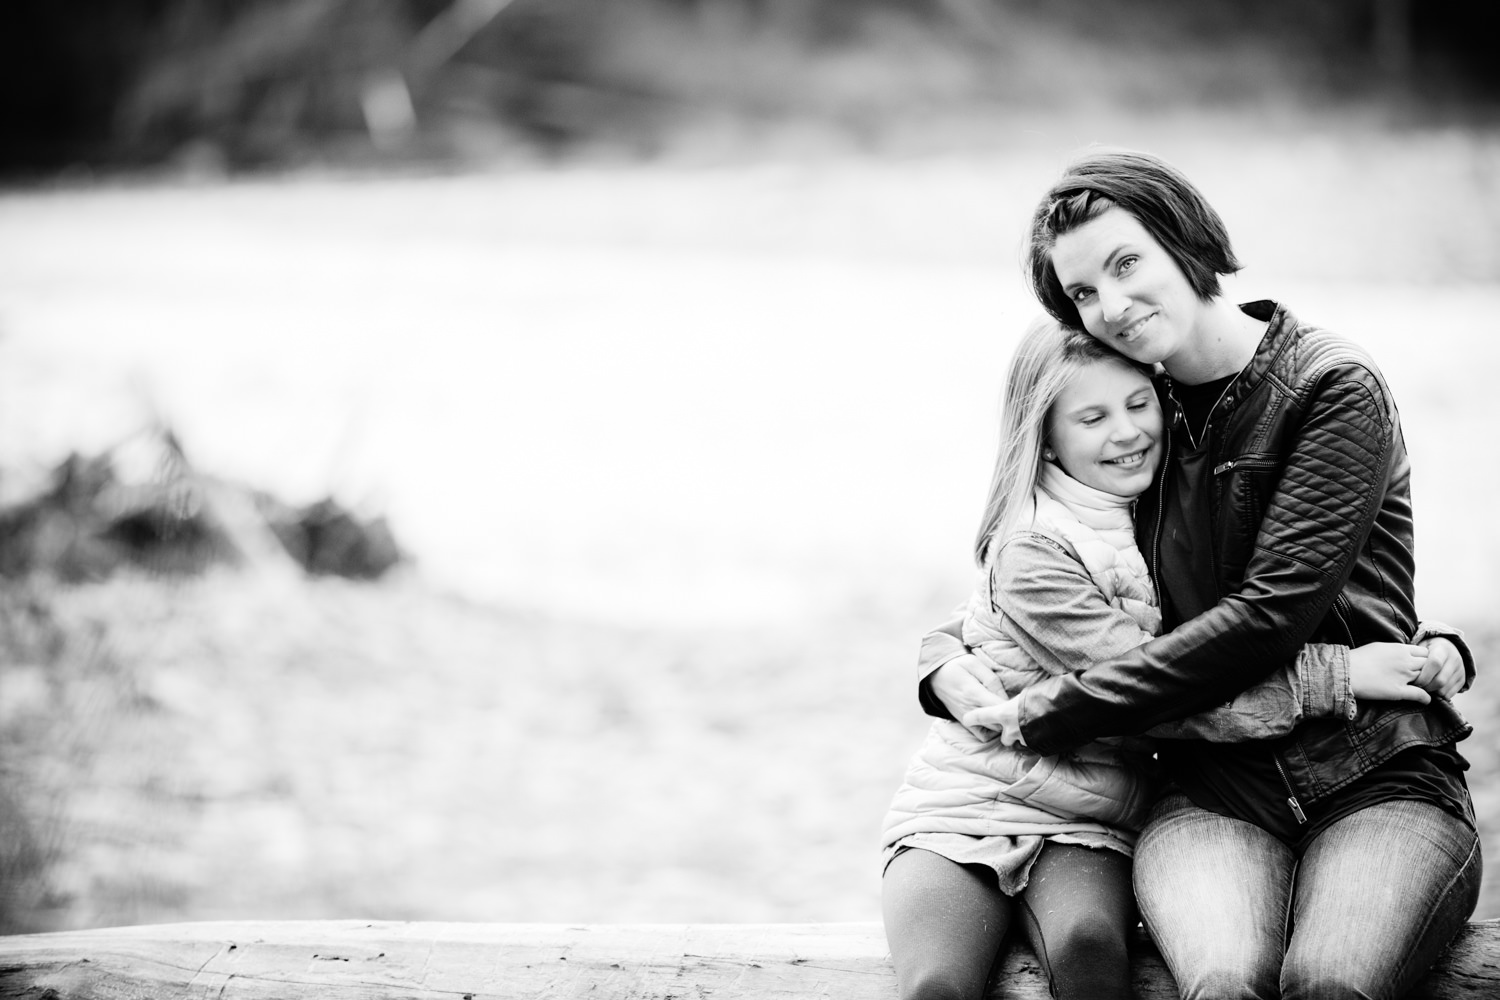 quesnel-family-photographers-quesnel-family-photography-cotton-wood-river-quesnel-bc-kelowna-photographer-julie-dorge (37 of 48).jpg